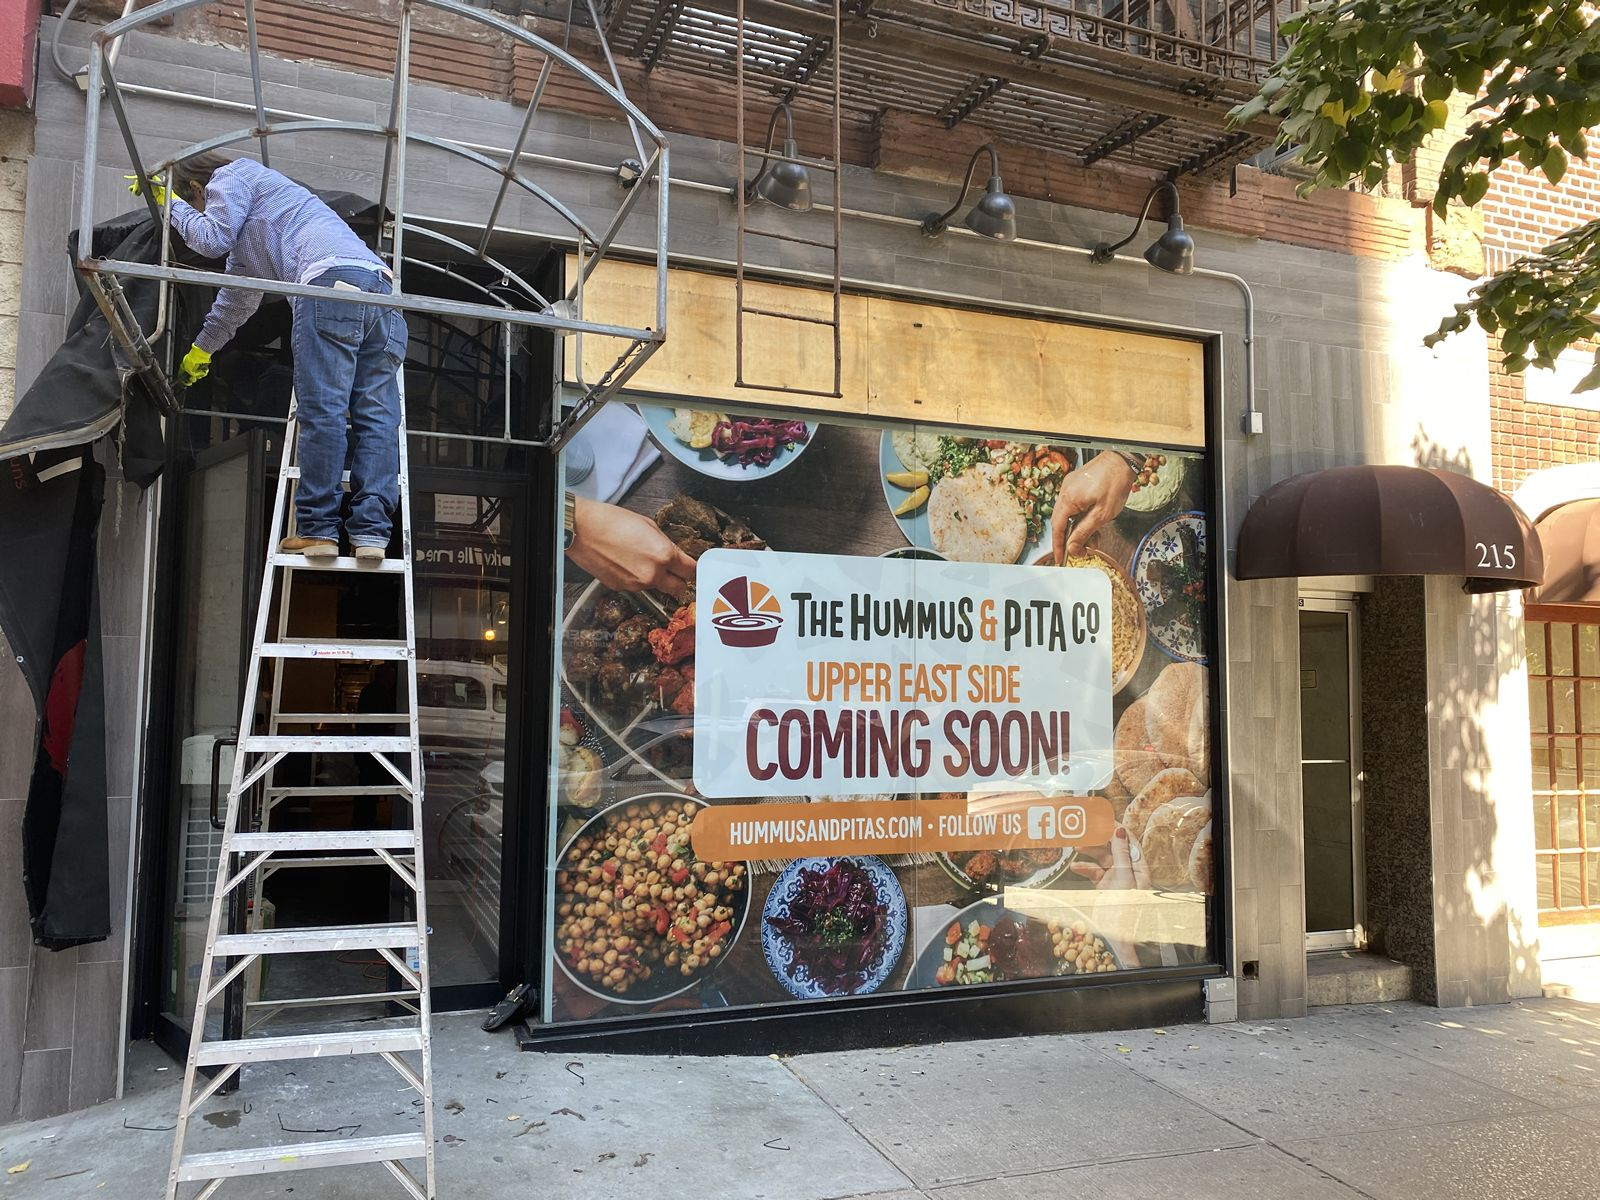 The Hummus & Pita Co. secures a new location in desirable Upper East Side Manhattan and is slated to open before year's end.